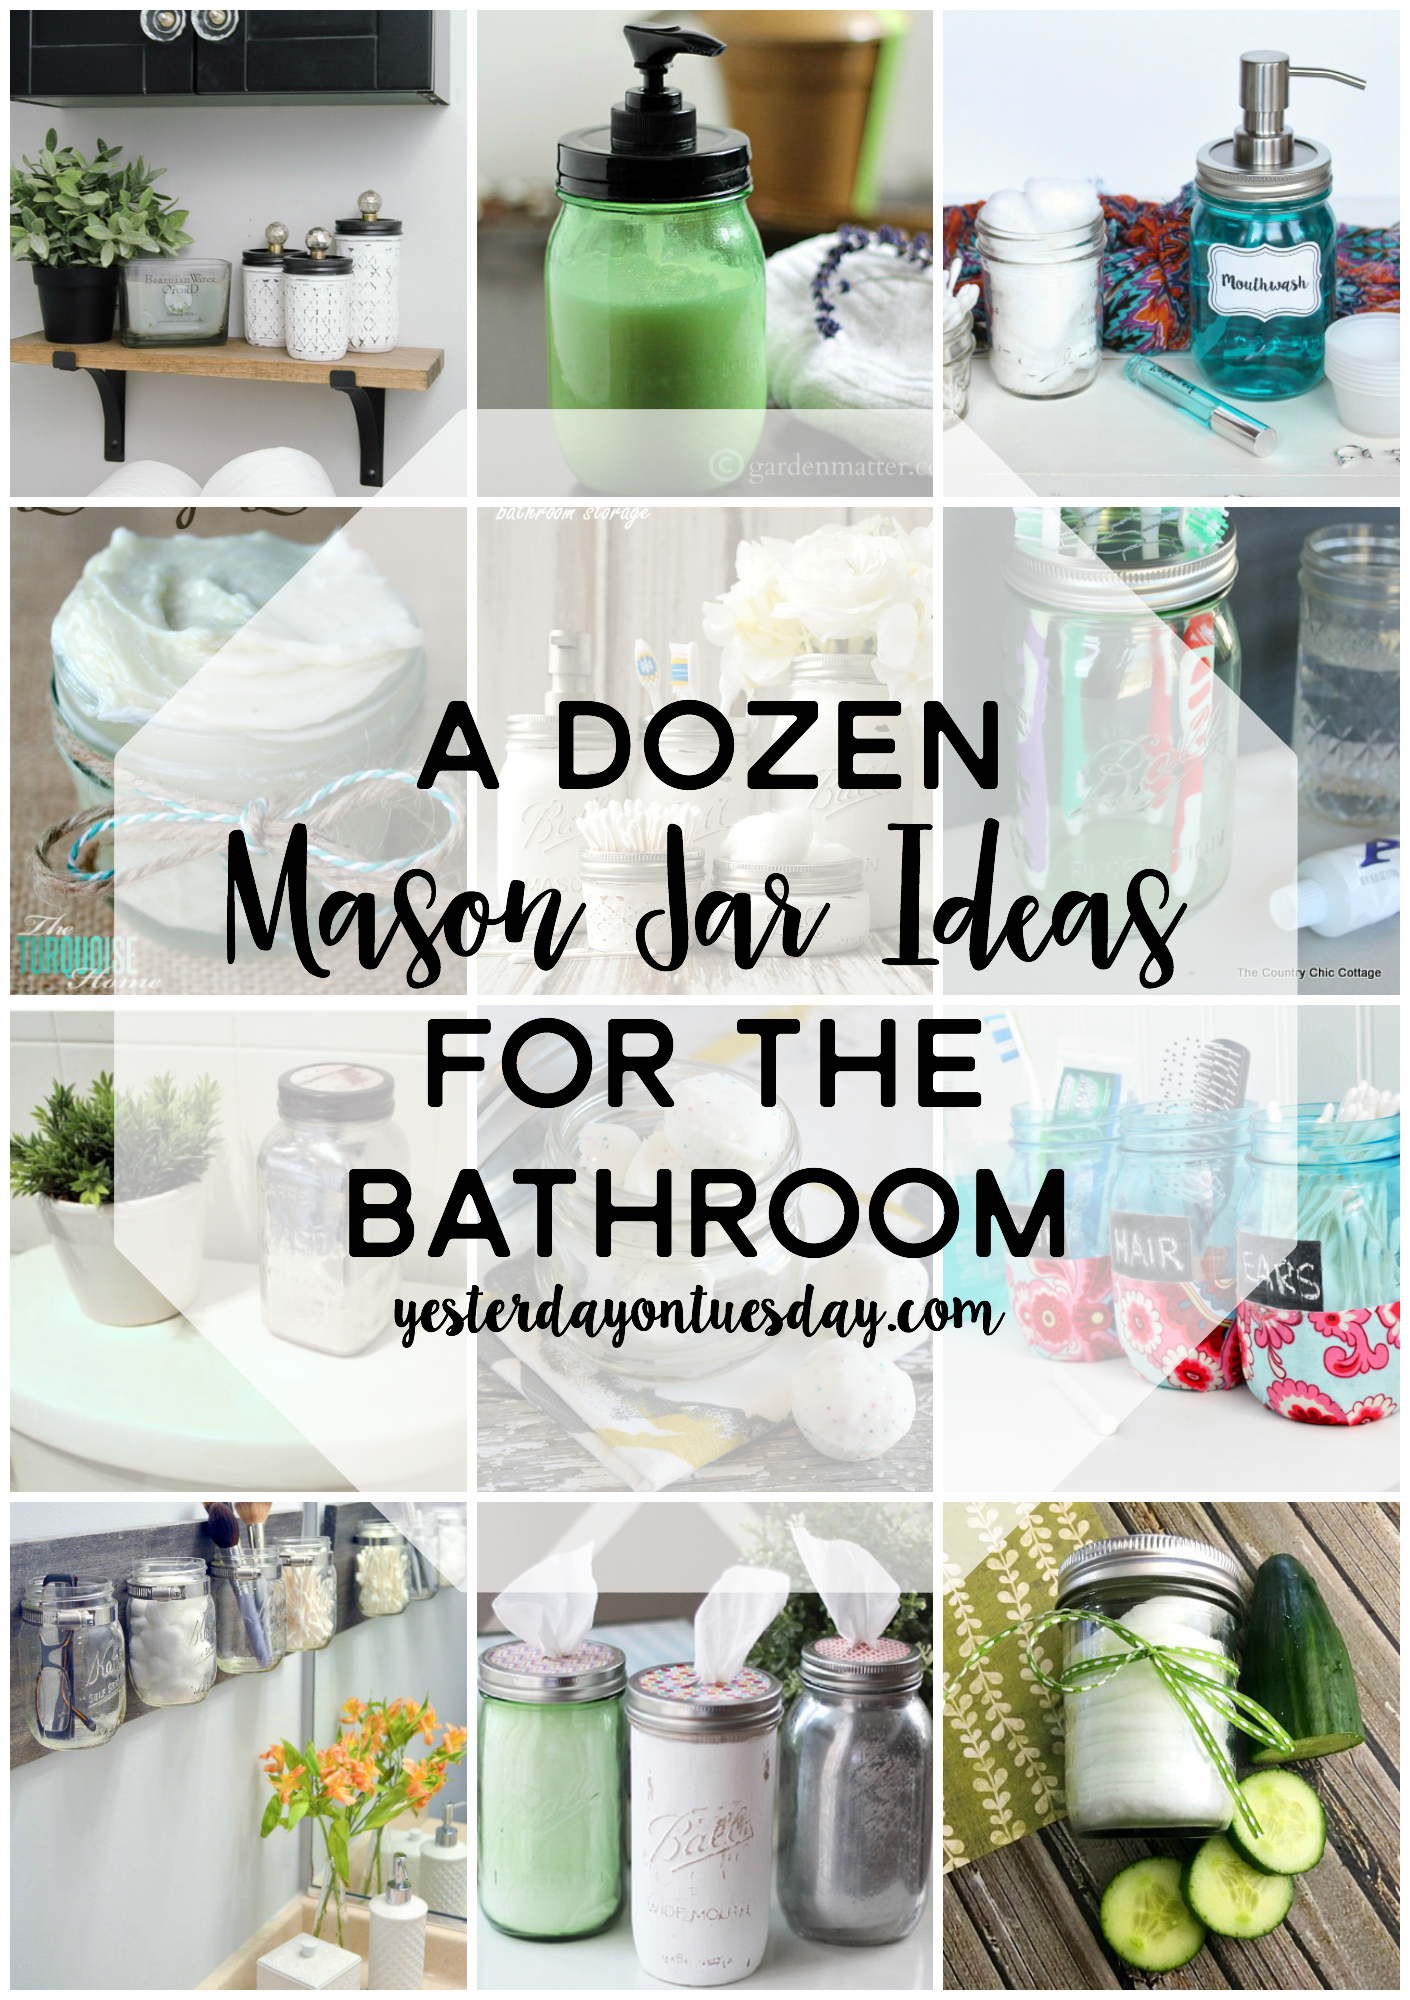 A Dozen Mason Jar Ideas For The Bathroom Yesterday On Tuesday within sizing 1410 X 2000